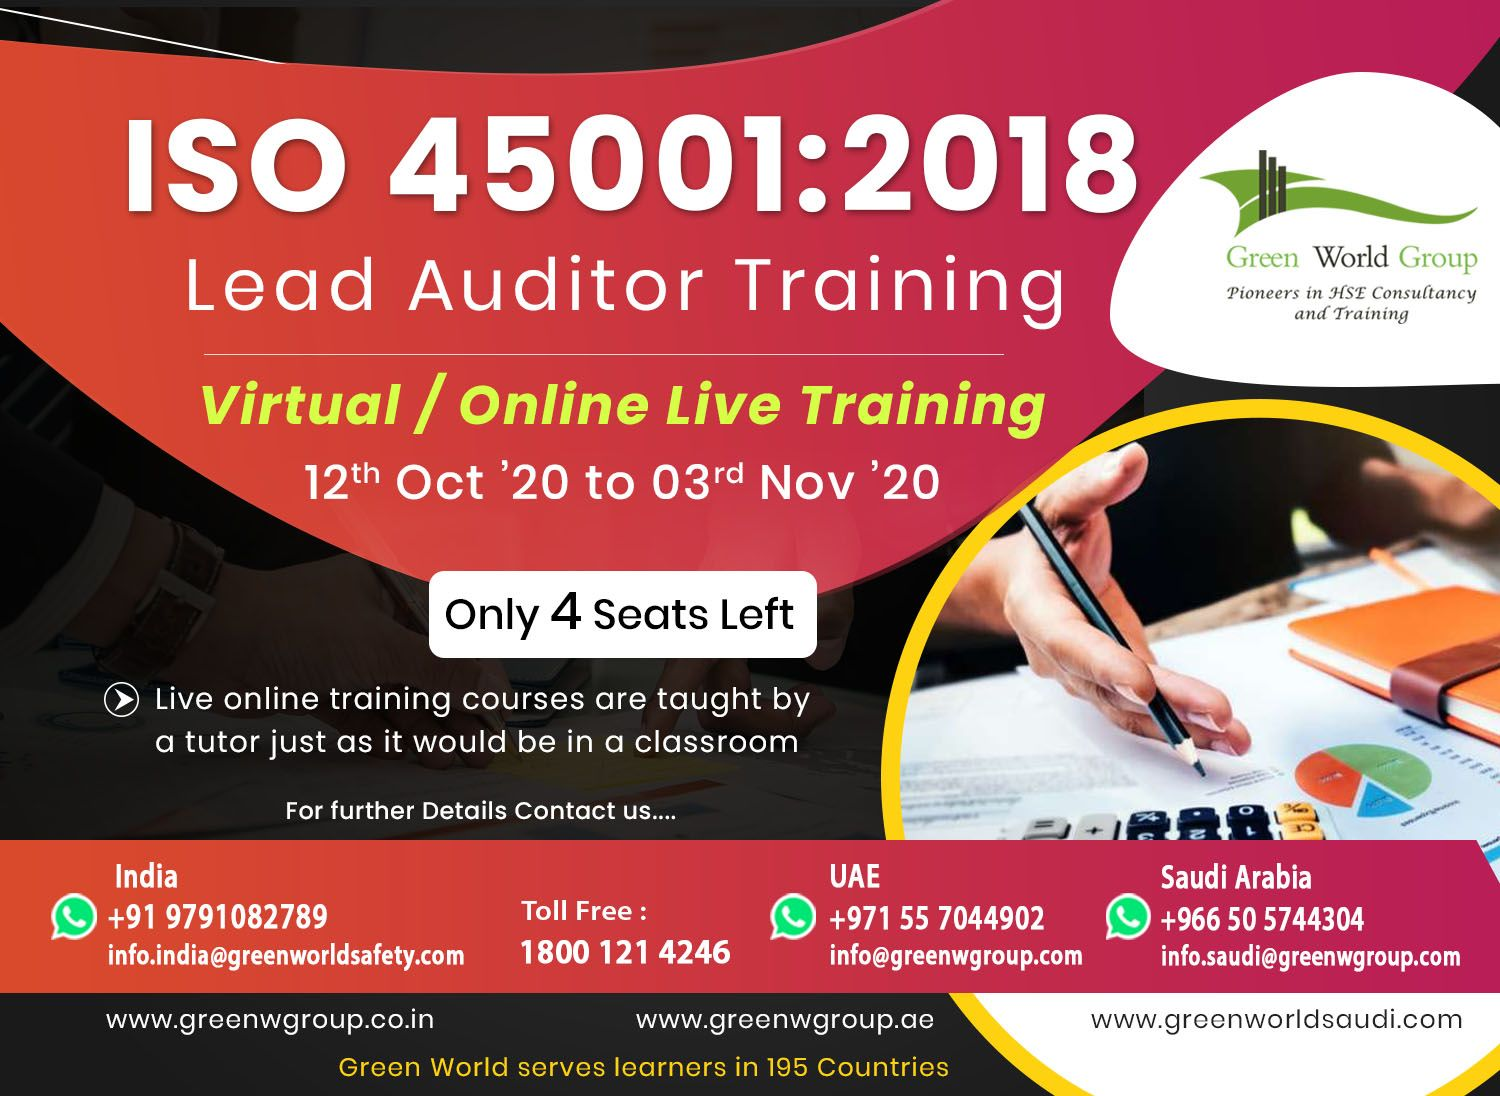 Enroll iso 450012018 lead auditor course in chennai